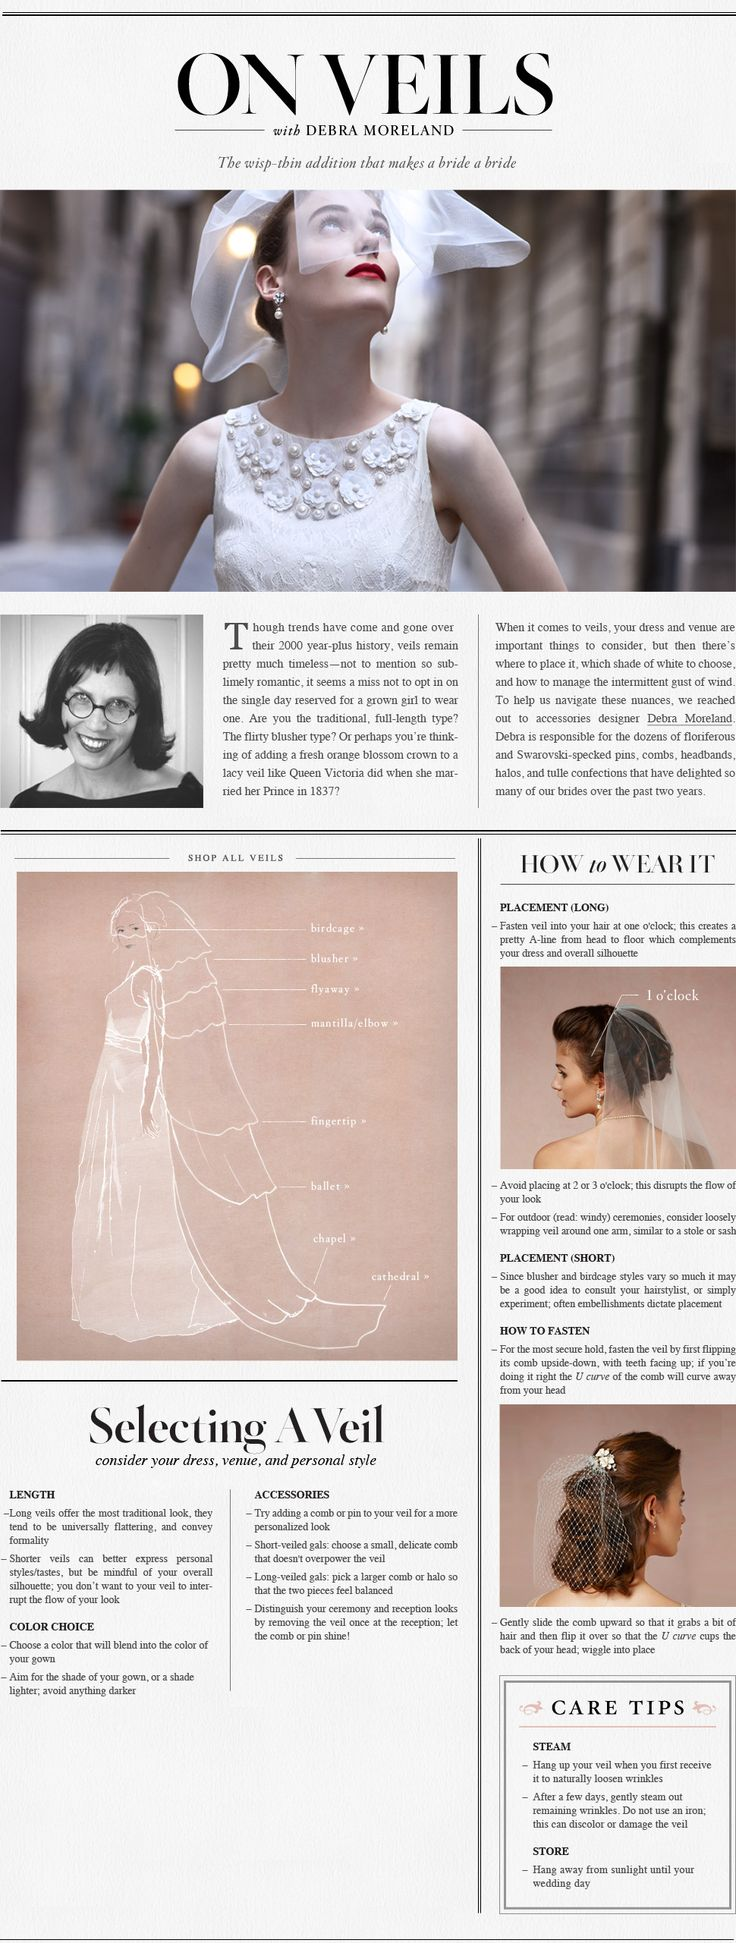 Great Advice From Paris by Debra Moreland On How To Shop For Your Wedding Veil   On Veils | B-Inspired | BHLDN